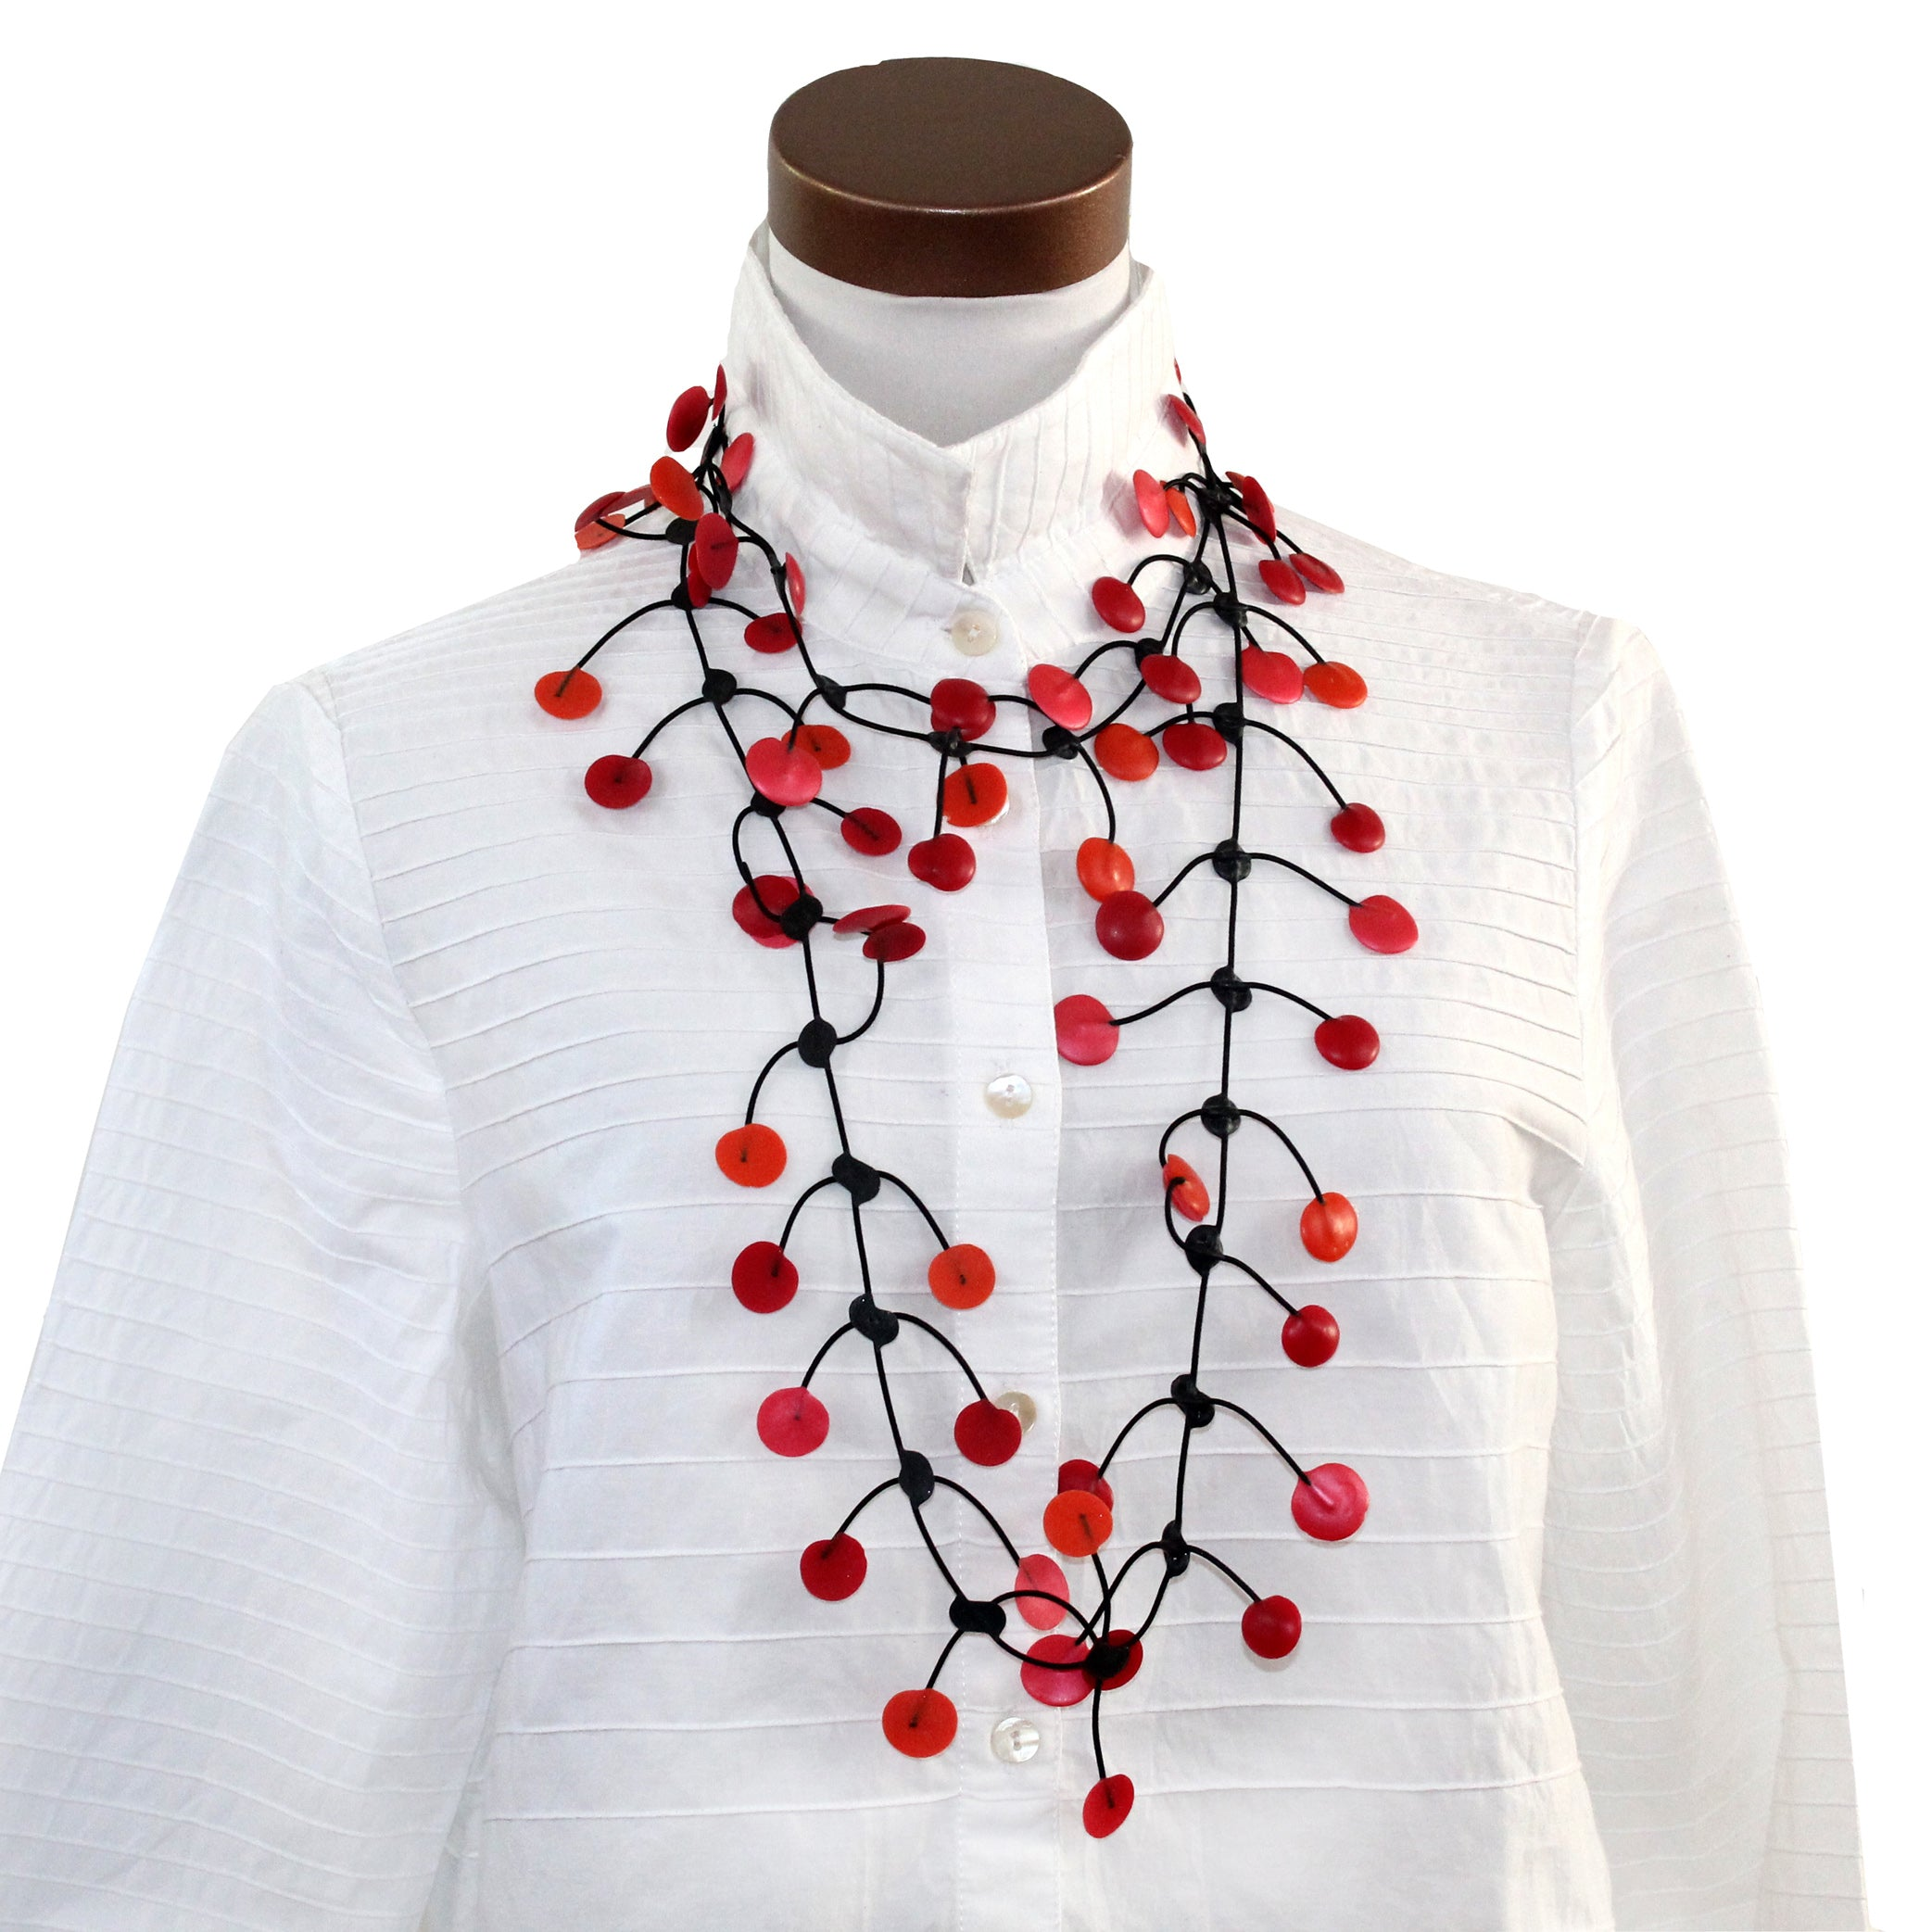 Annemieke Broenink, Necklace, Pop, Red/Orange